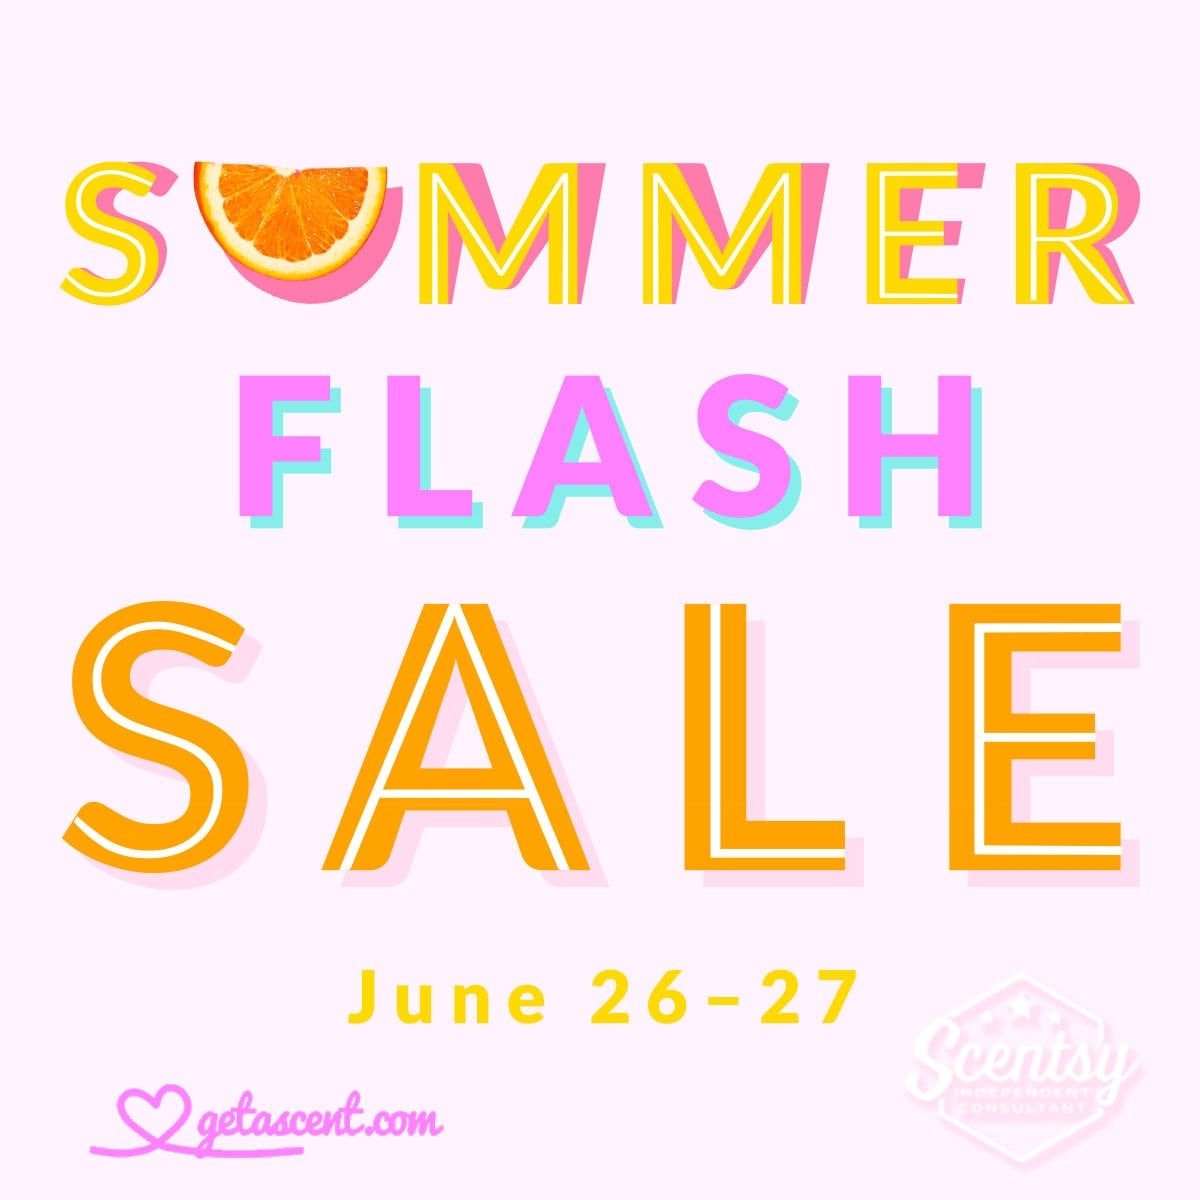 Don't miss the Scentsy Summer Flash Sale at getascent.com!